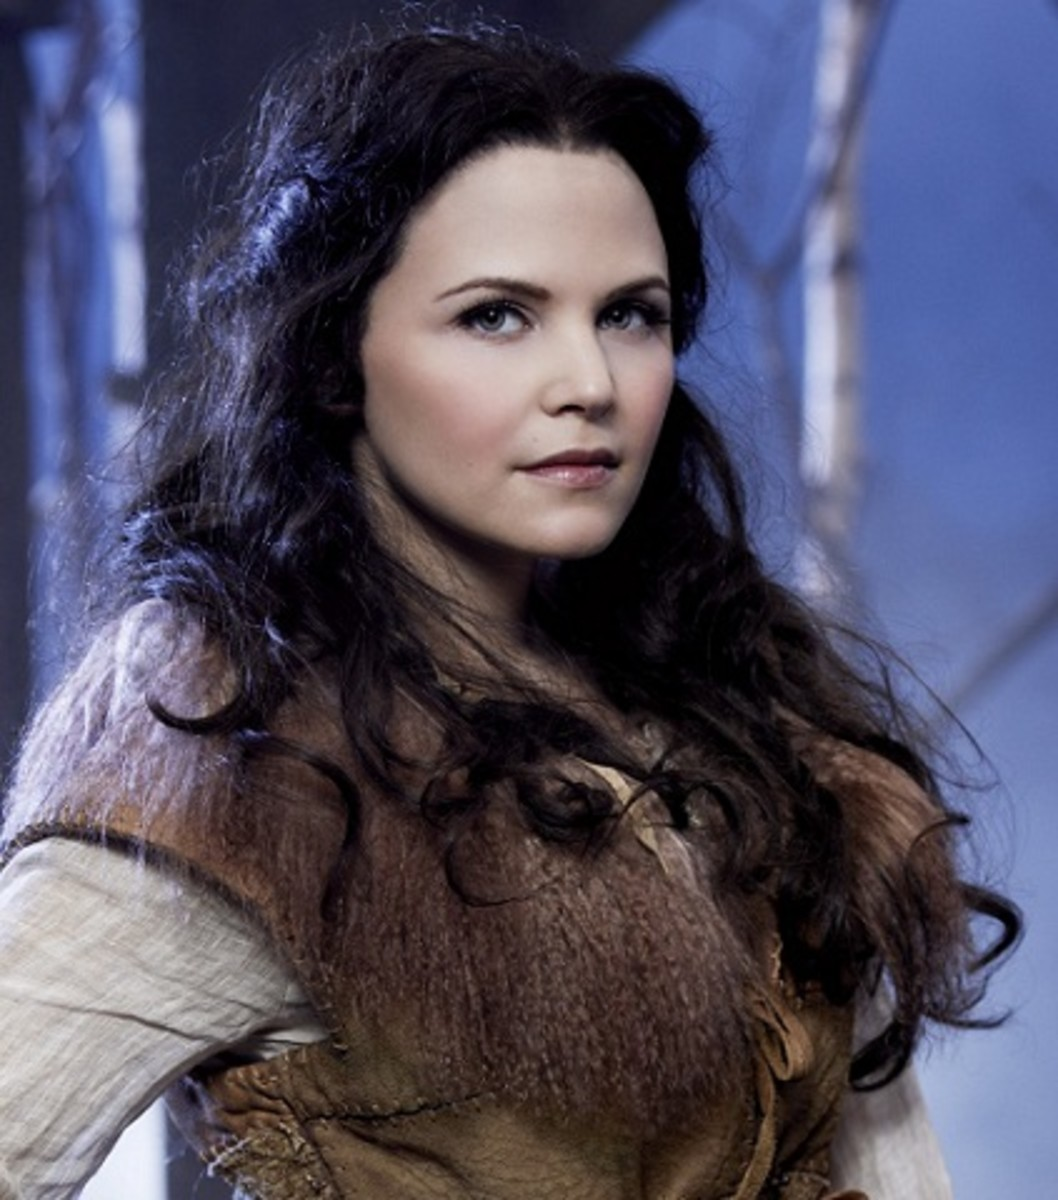 """Snow White Ginnifer Goodwin""  - Once Upon a Time. Licensed under ""fair use"" of copyrighted material in the context of Snow White via Wikipedia -"